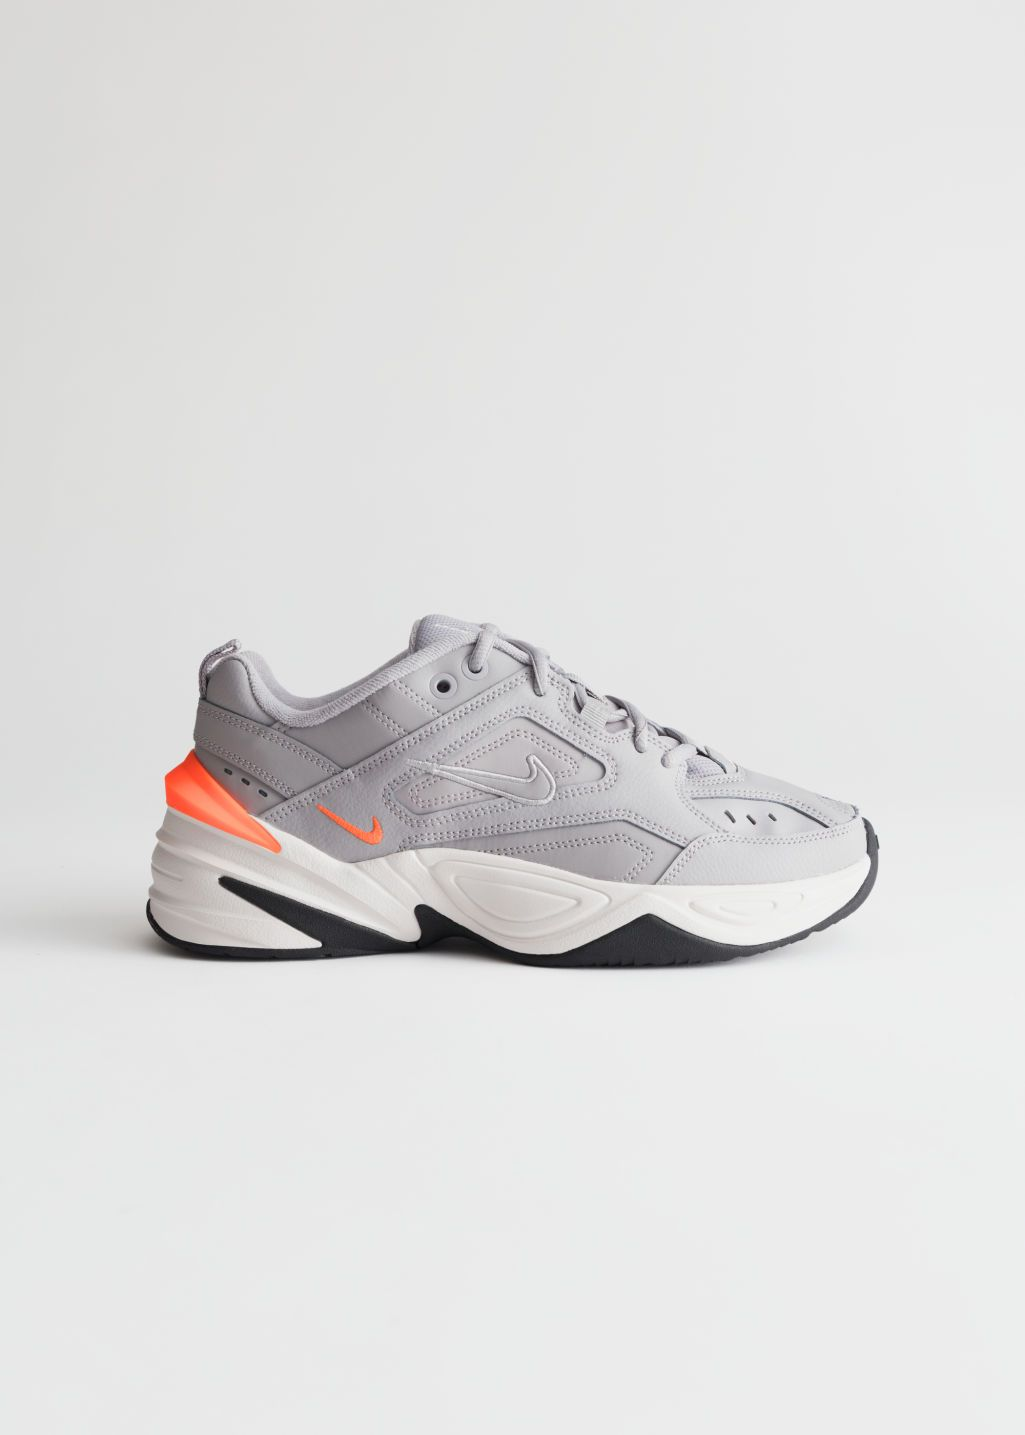 best sneakers 6dd1a ed6c0 Nike M2K Tekno - Silver - Nike -   Other Stories